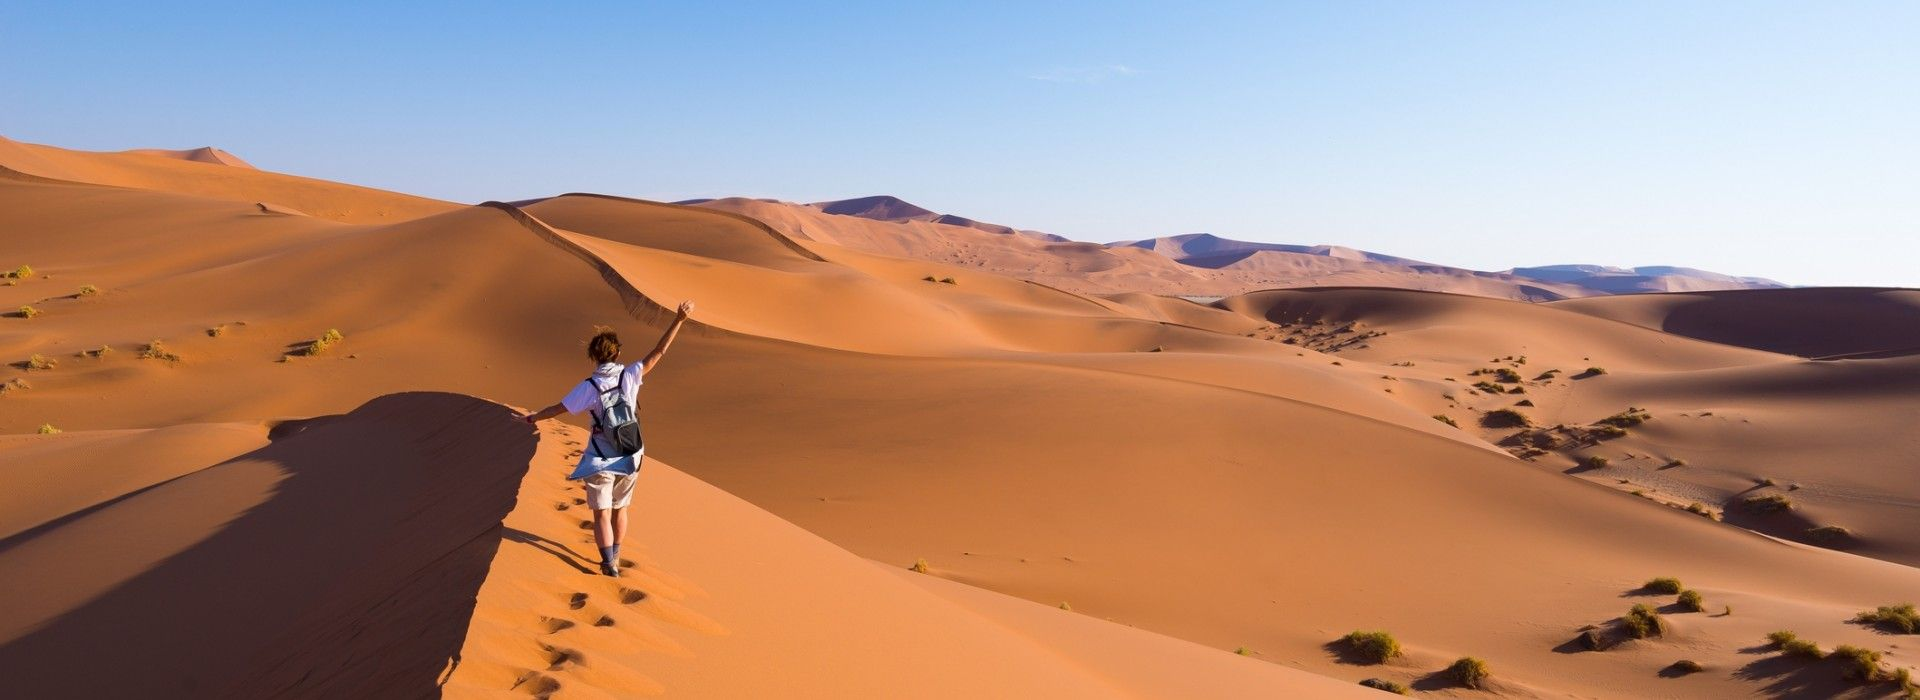 Adventure and sport activities Tours in Namibia